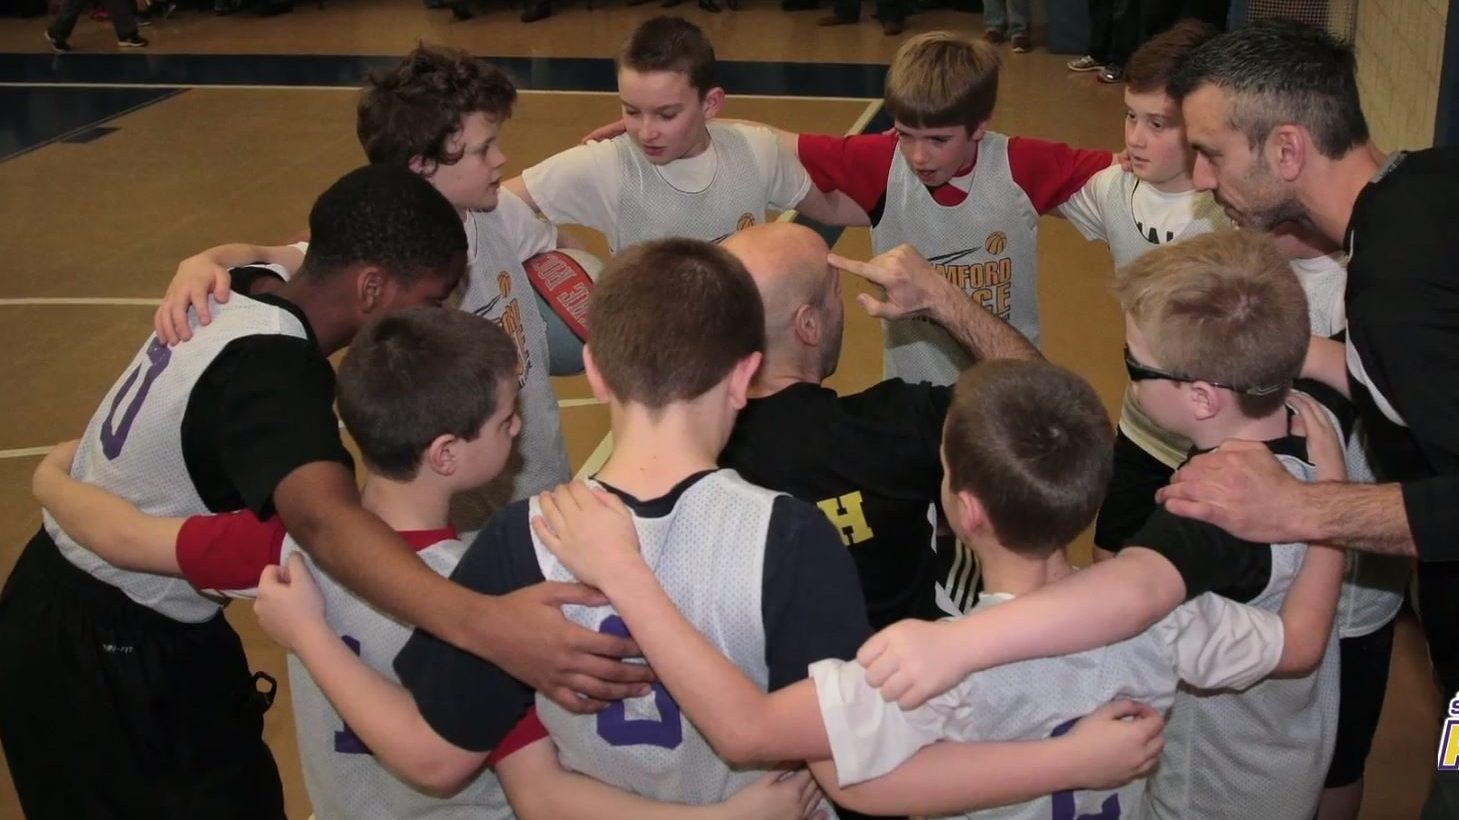 Image: young basketball players with their arms around each other in a huddle